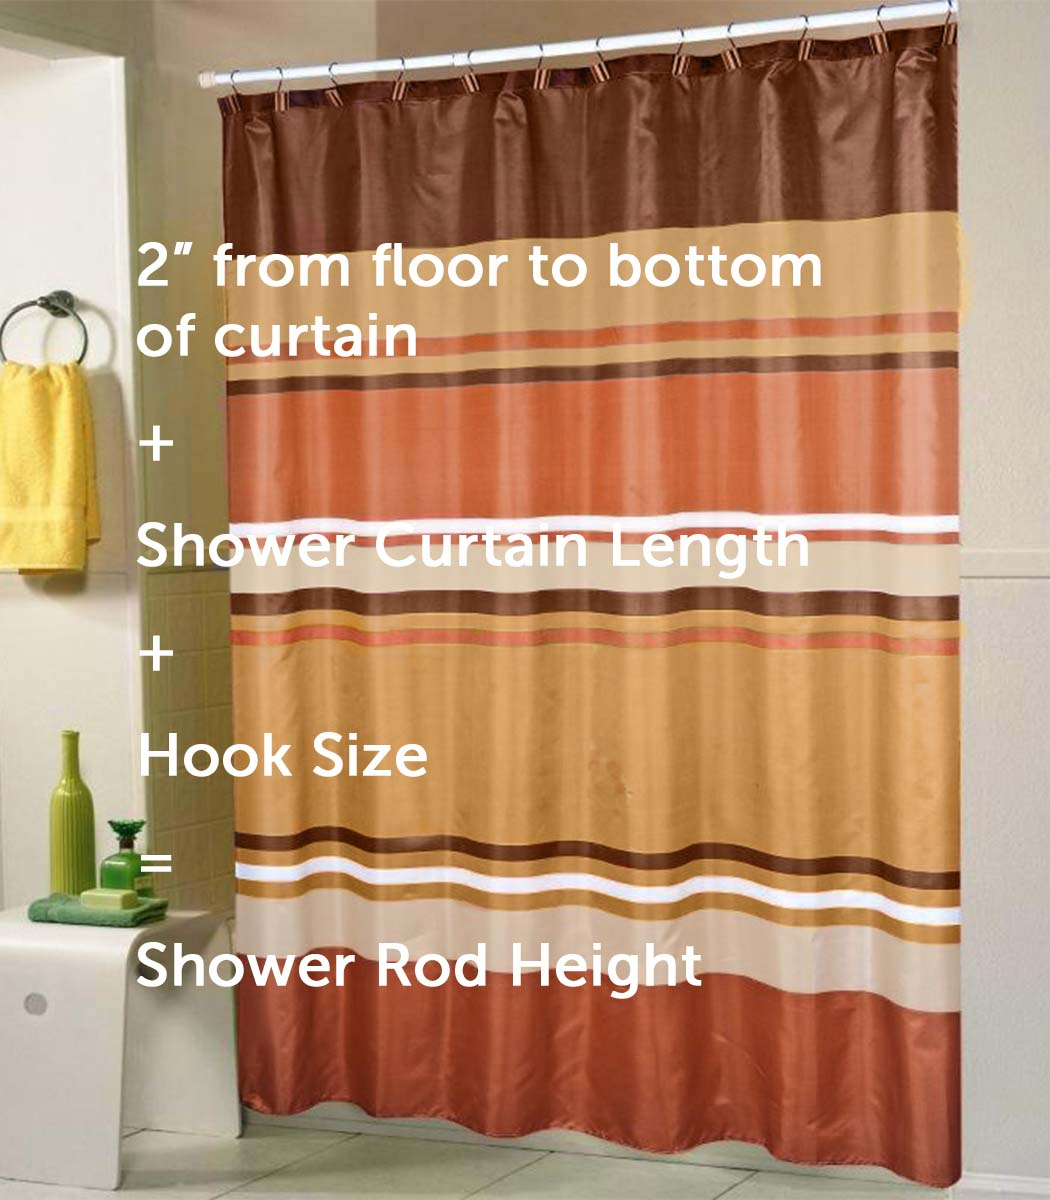 With A Standard Shower Curtain Height At 70 Or 72 Inches, Adding At Least  Three Inches Will Give You A Good Indication About The Ideal Shower Curtain  Rod ...